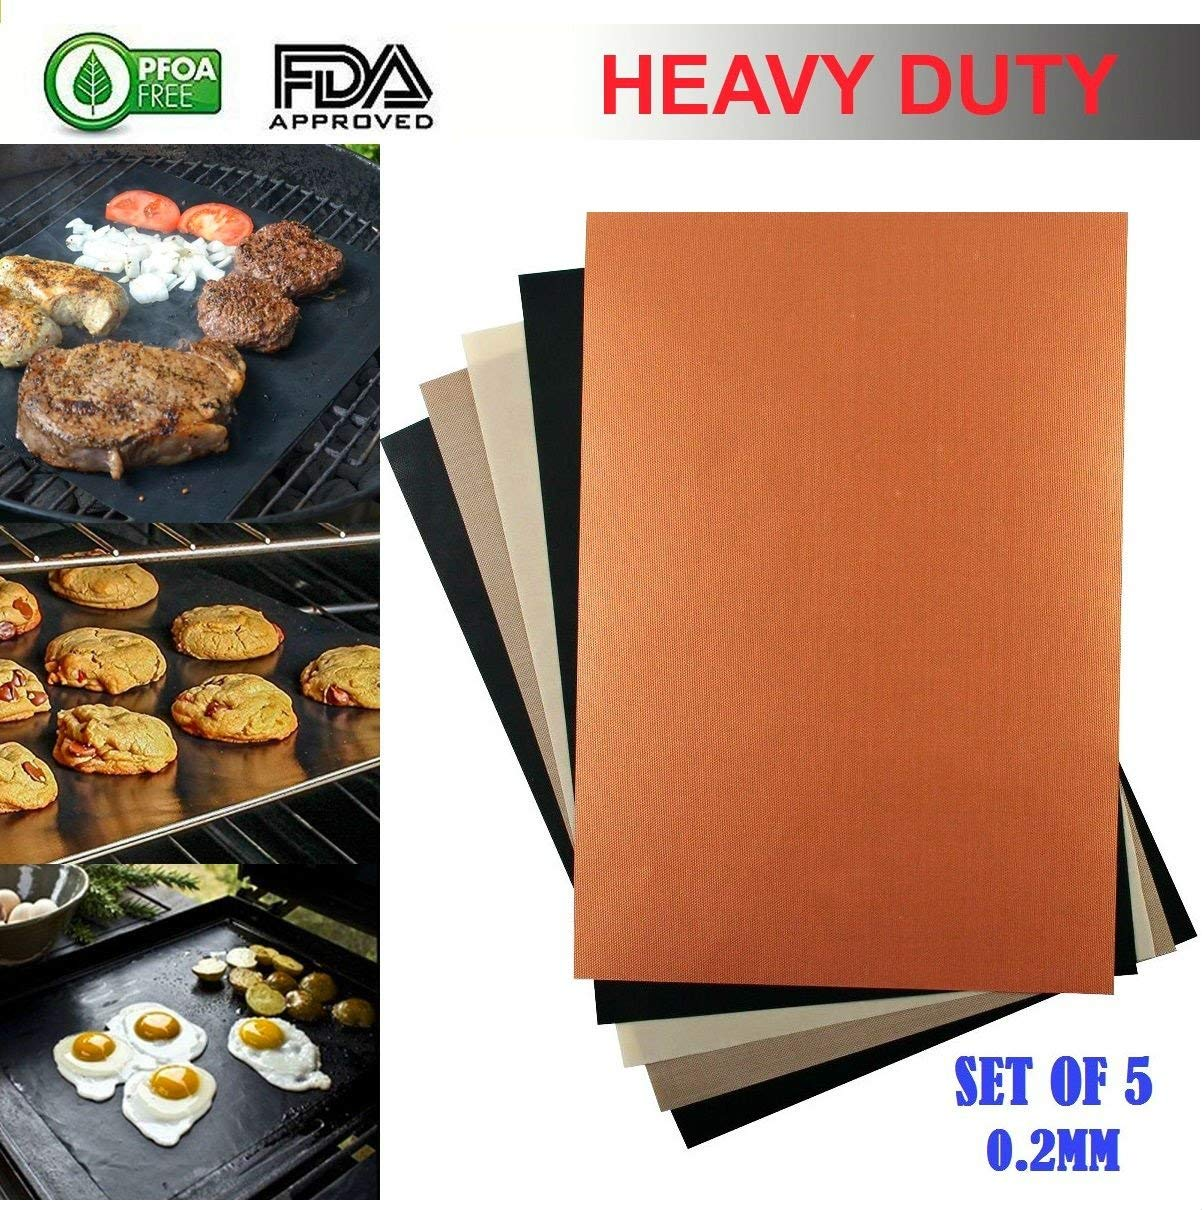 10PCS 0.2MM HEAVY-DUTY BBQ Grill Baking Mats Dazzle Colors Non-Stick Reusable For Years Works On As Oven Baking Pan Liners Or Use On Any Grill Gas Electric Charcoal Grill Sheets (11.8X15.7inch) by Kamay's (Image #2)